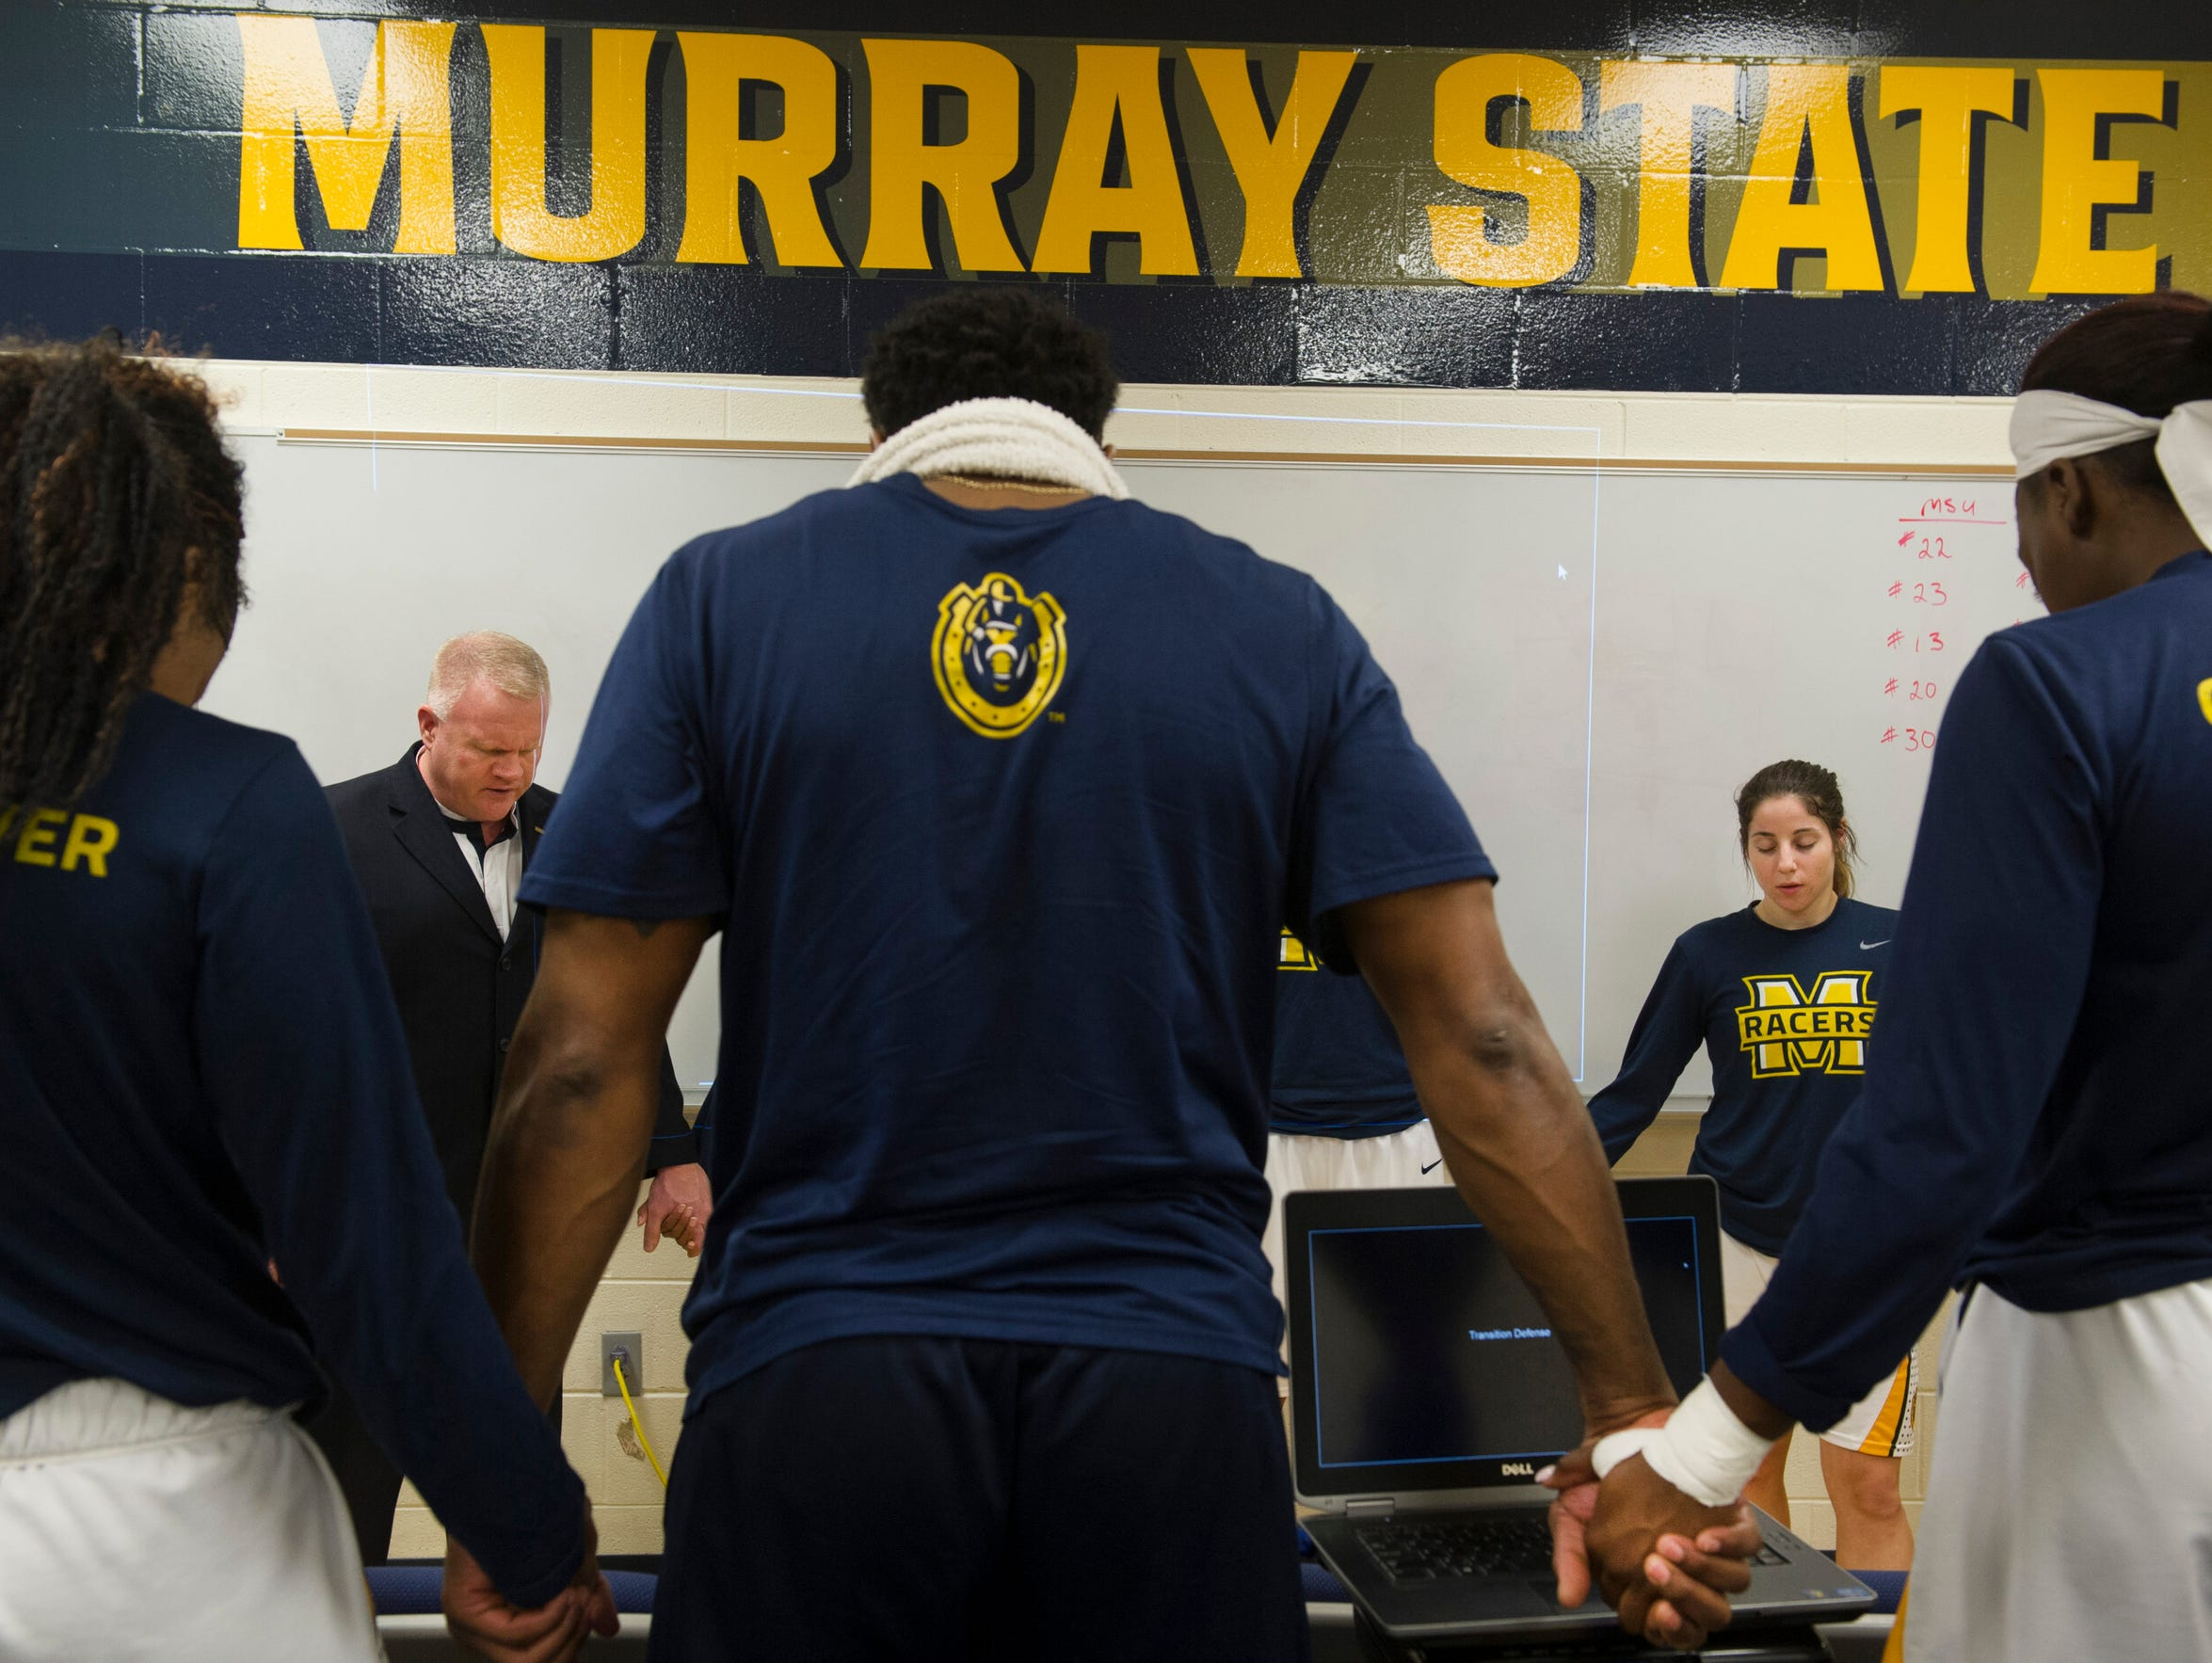 The Murray State Racers gather for a prayer before